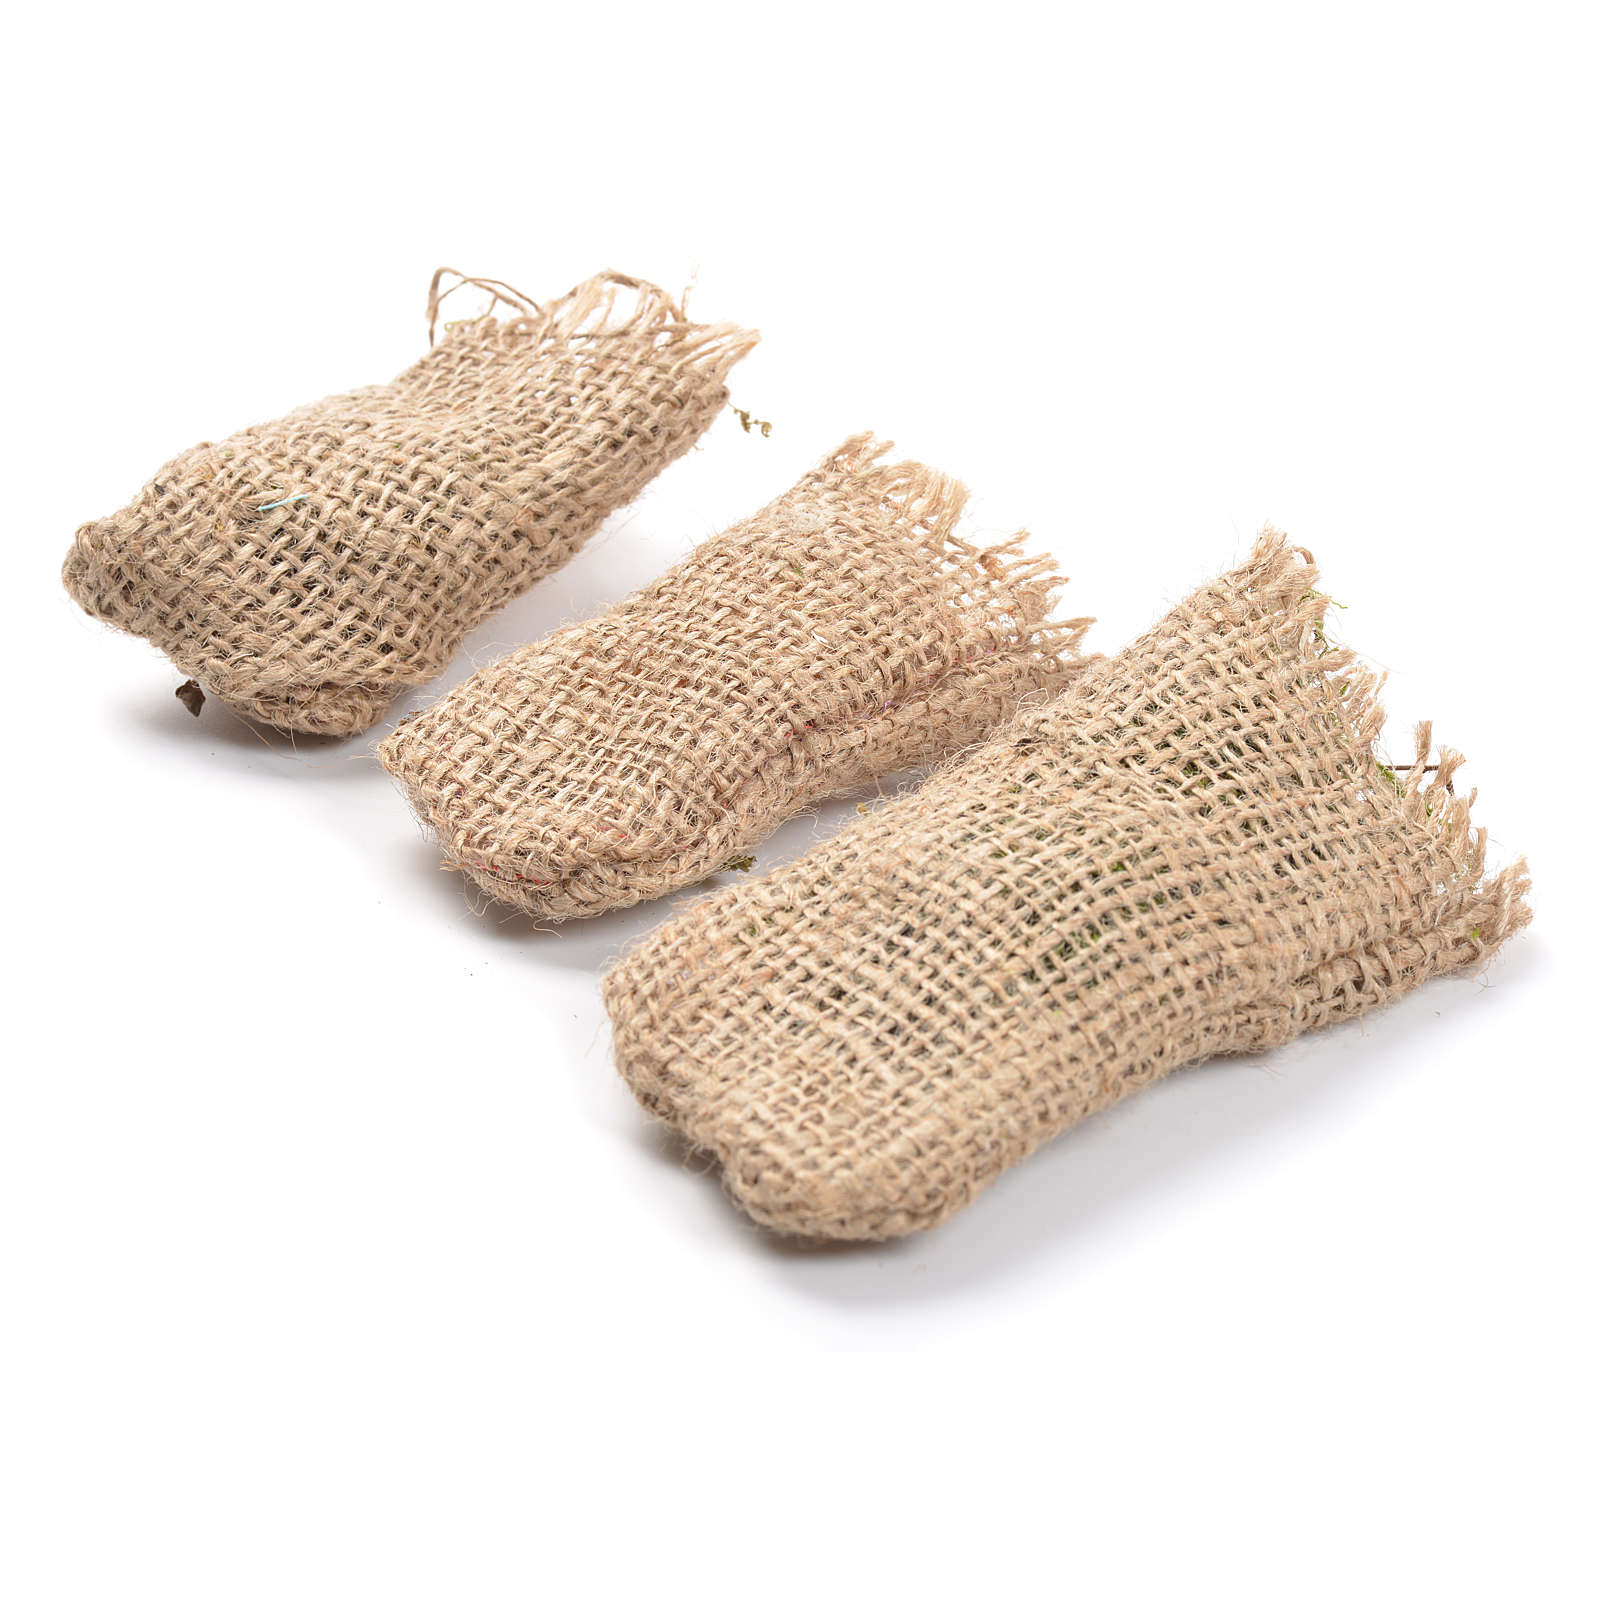 Jute sacks 3 pcs. nativity accessories 4